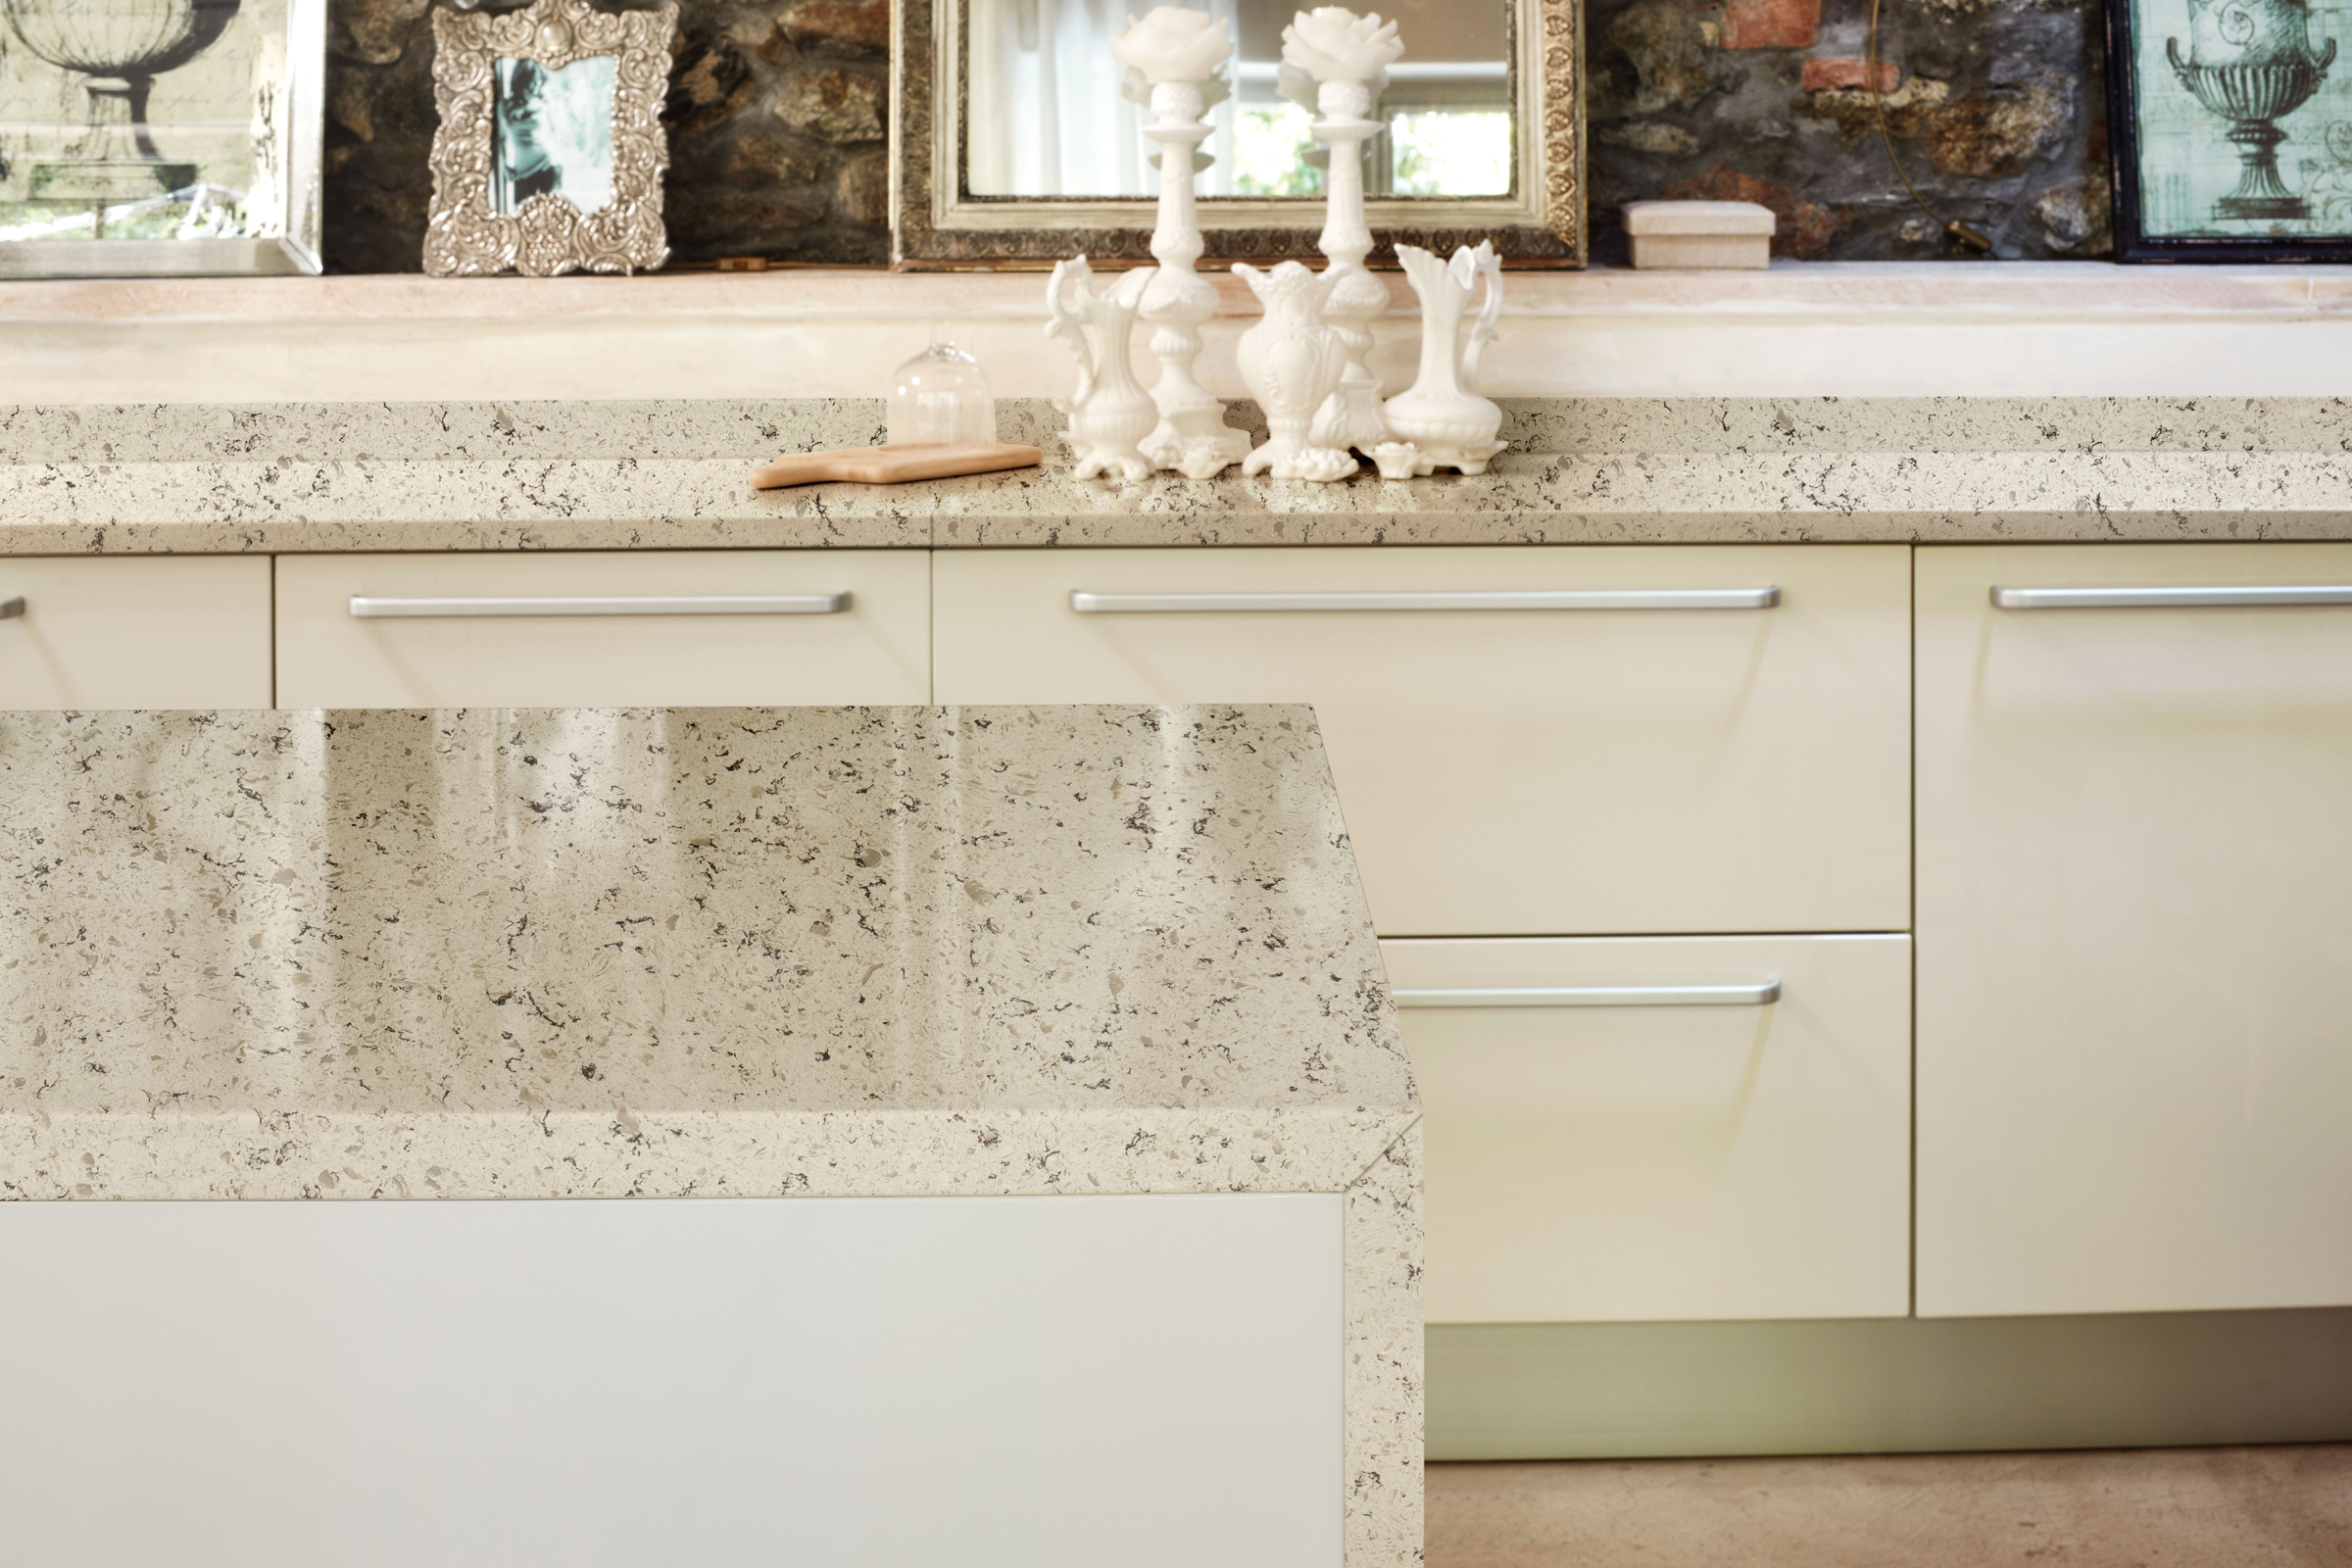 Corian design wins top product award from professional builder